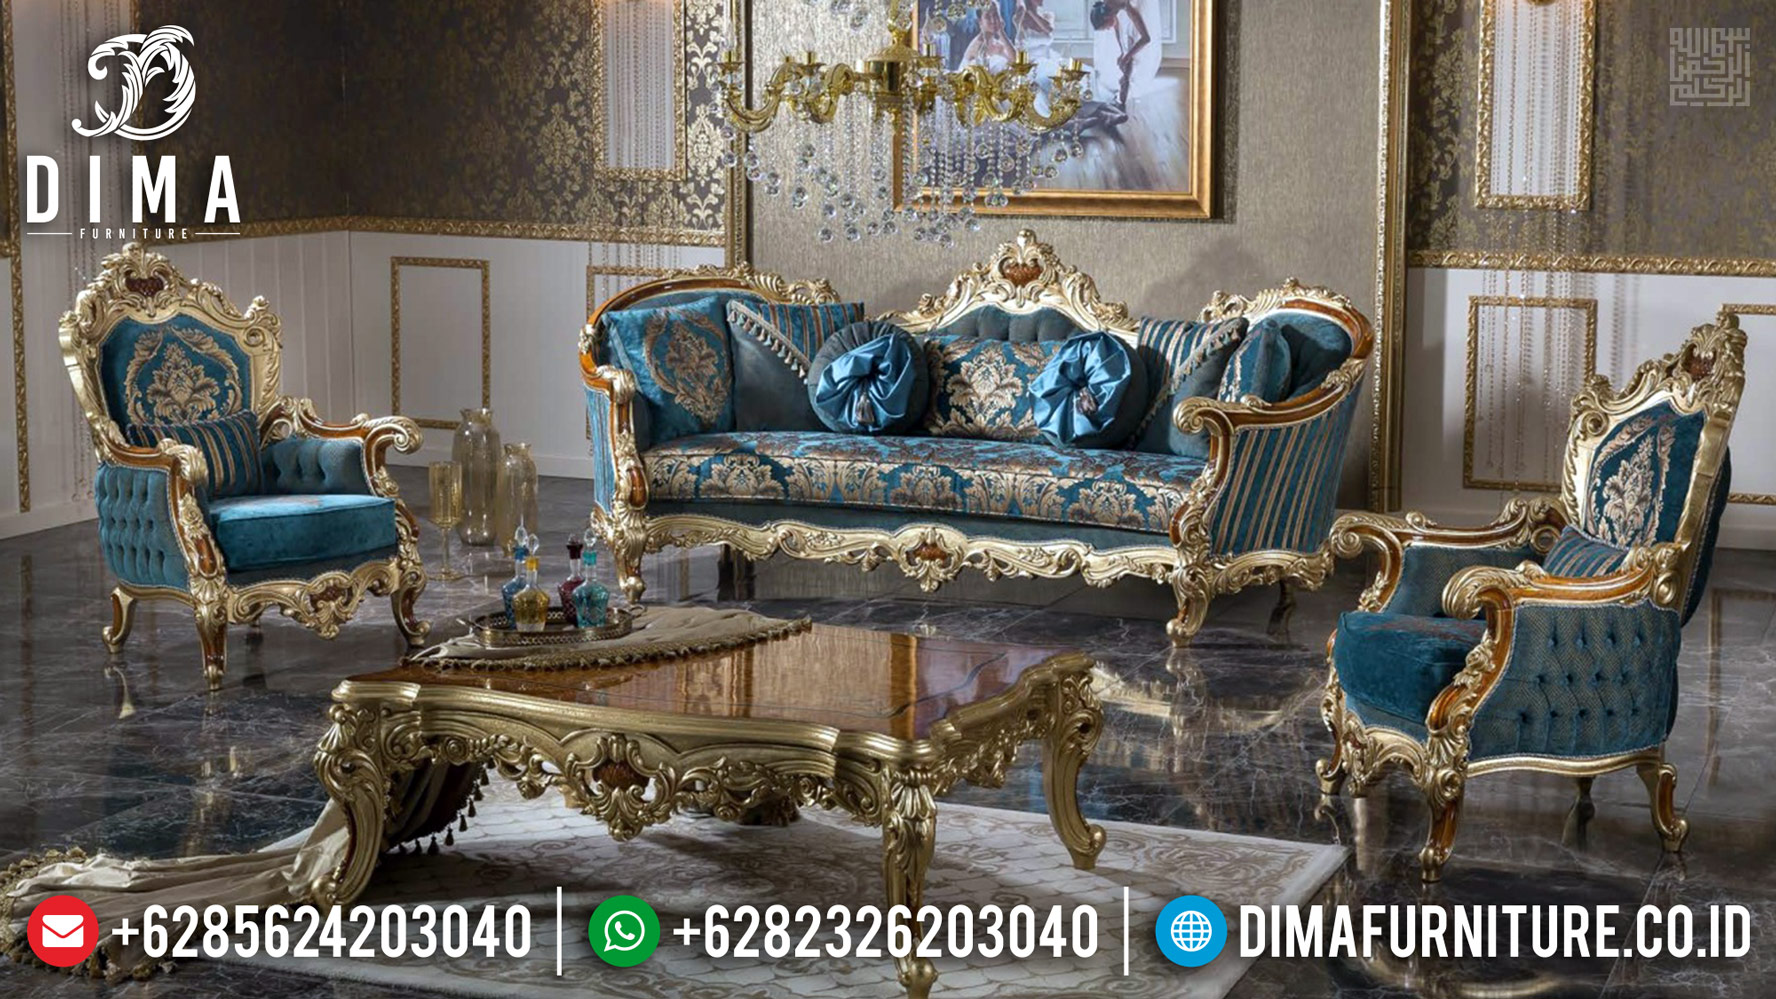 Sofa Tamu Mewah Amanda Golden Classic Combine Color Furniture Jepara MMJ-0441